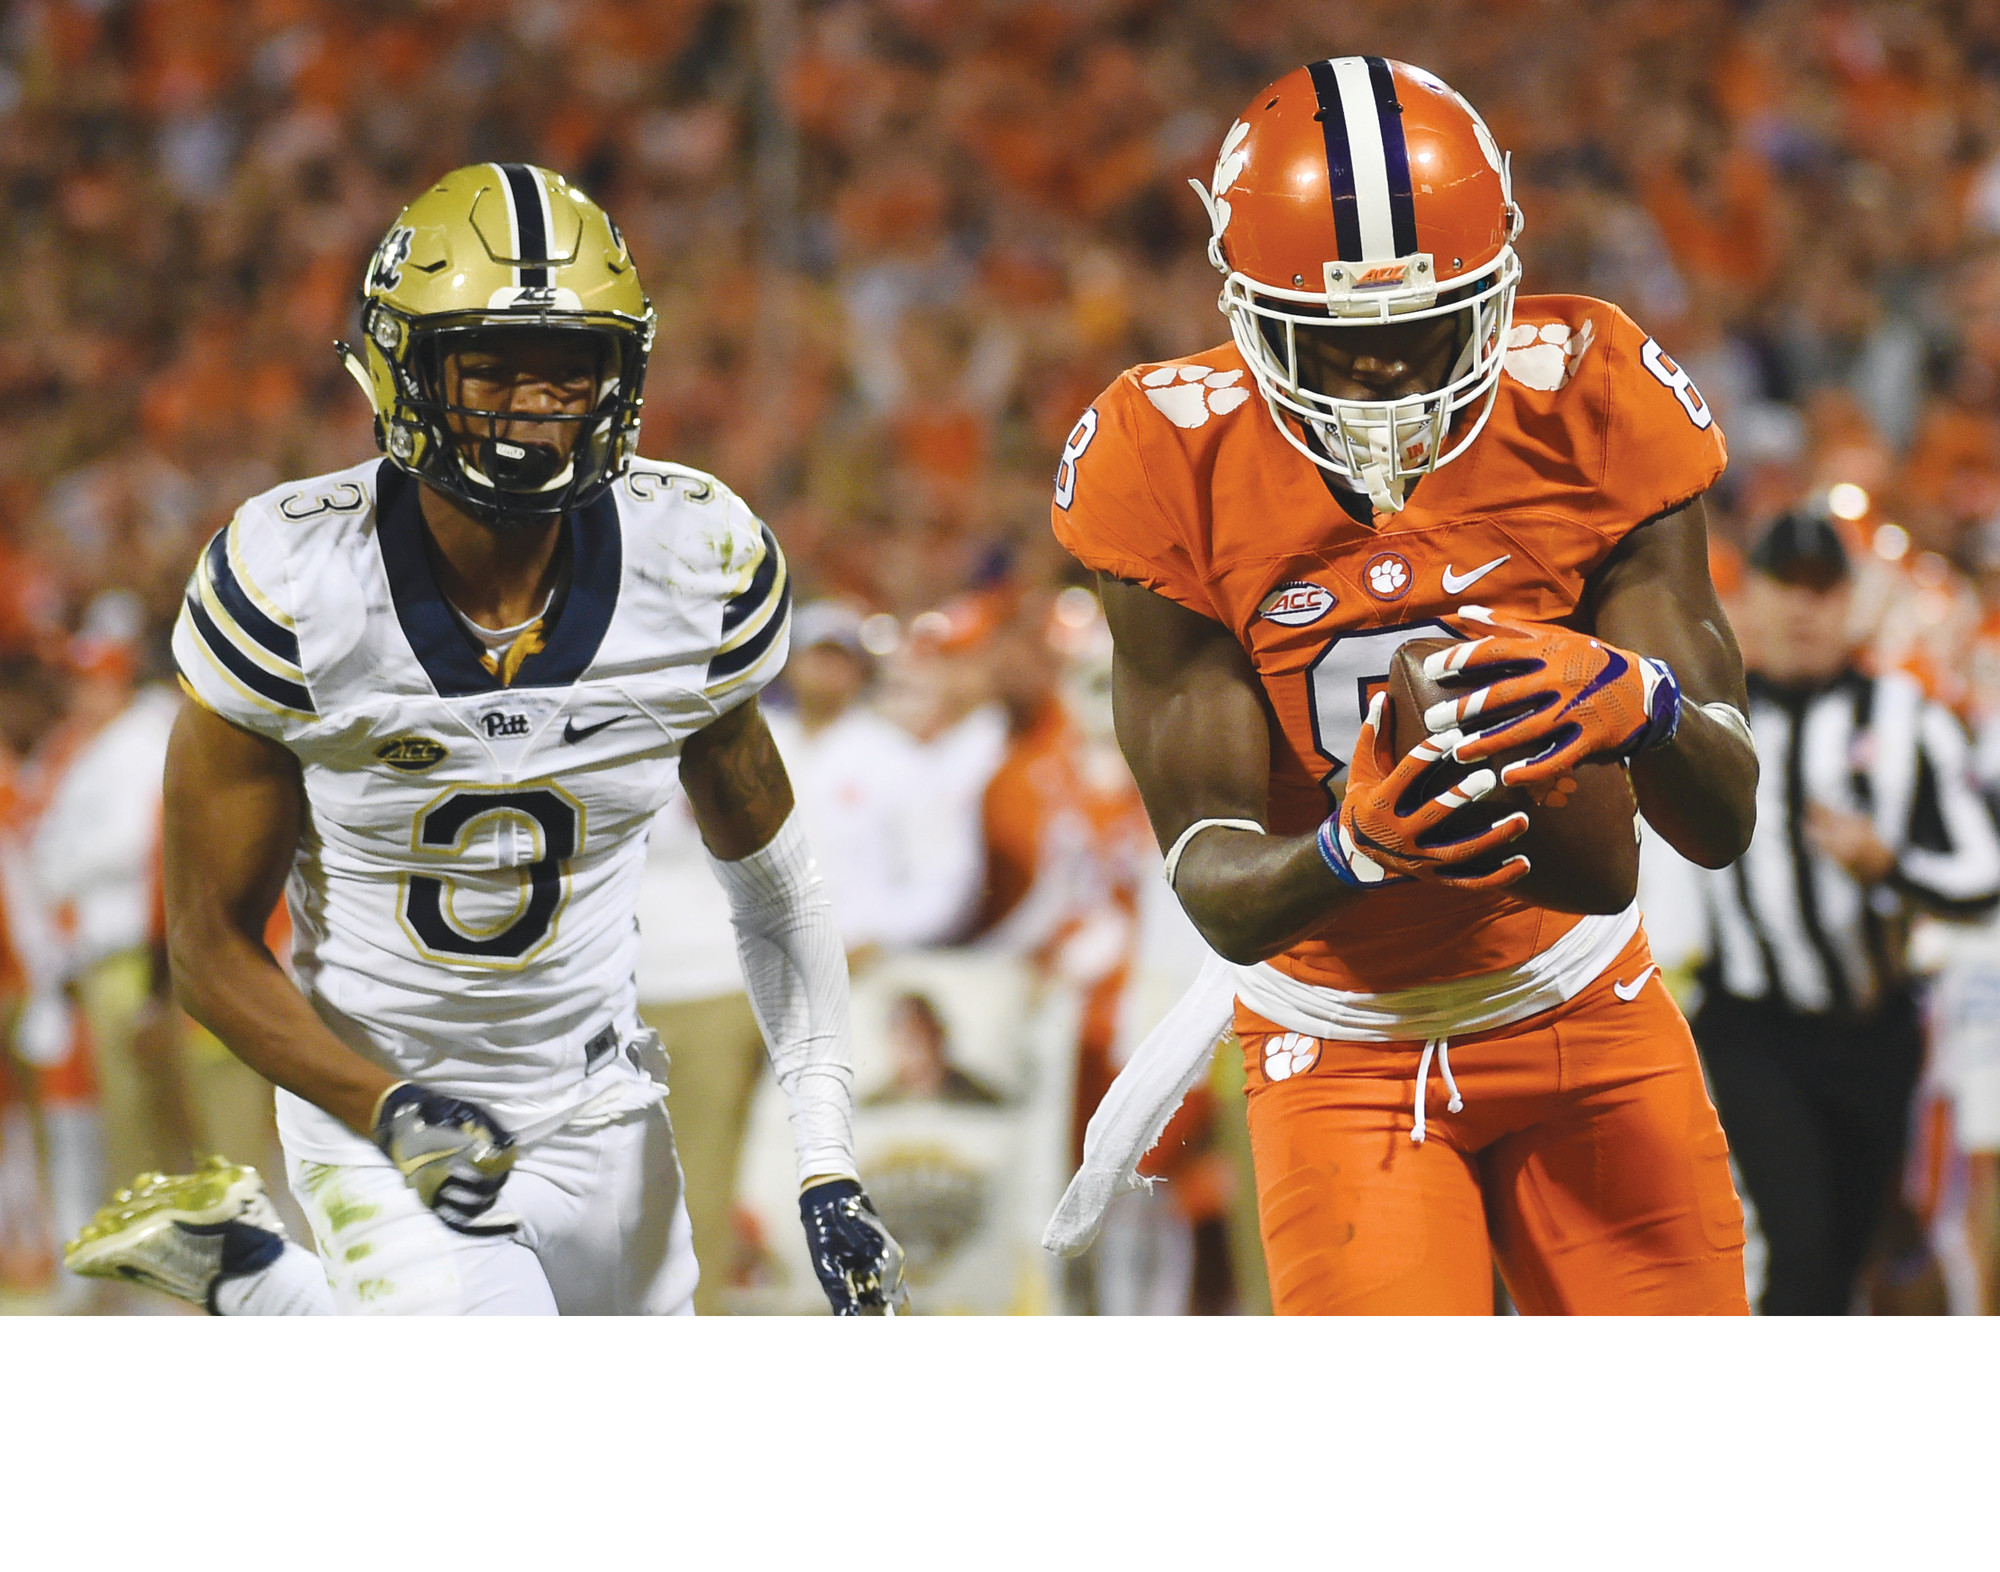 Clemson wide receiver Deon Cain (8) makes a catch as Pittsburgh defensive back Damar Hamlin (3) defends during their 2016 game in Clemson. Cain knows the questions are coming and he is looking forward to answering them this week at the NFL combine.